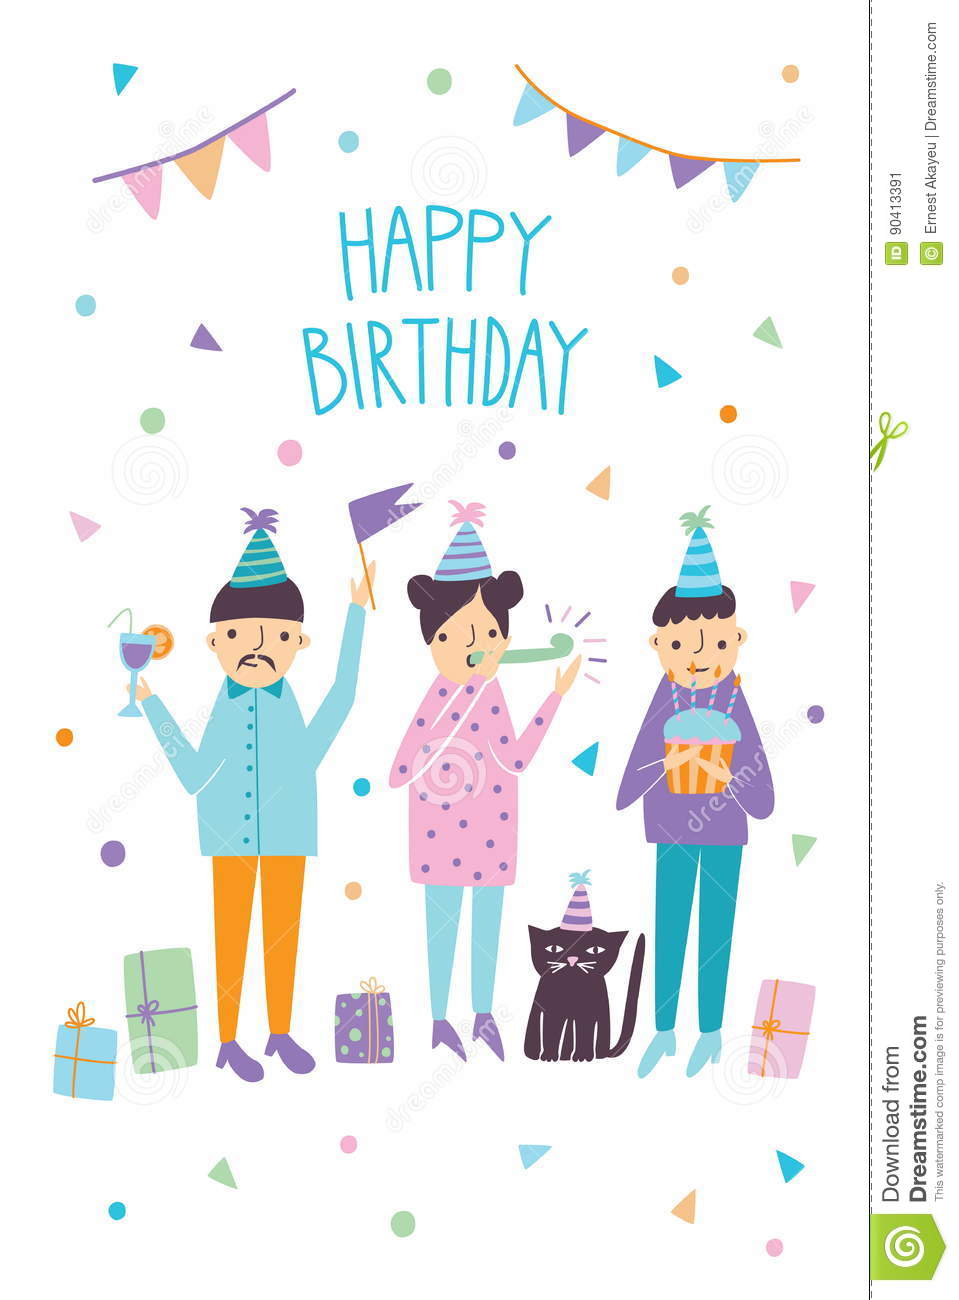 Happy Birthday Card With Funny Guests And Cat Friends Greetings